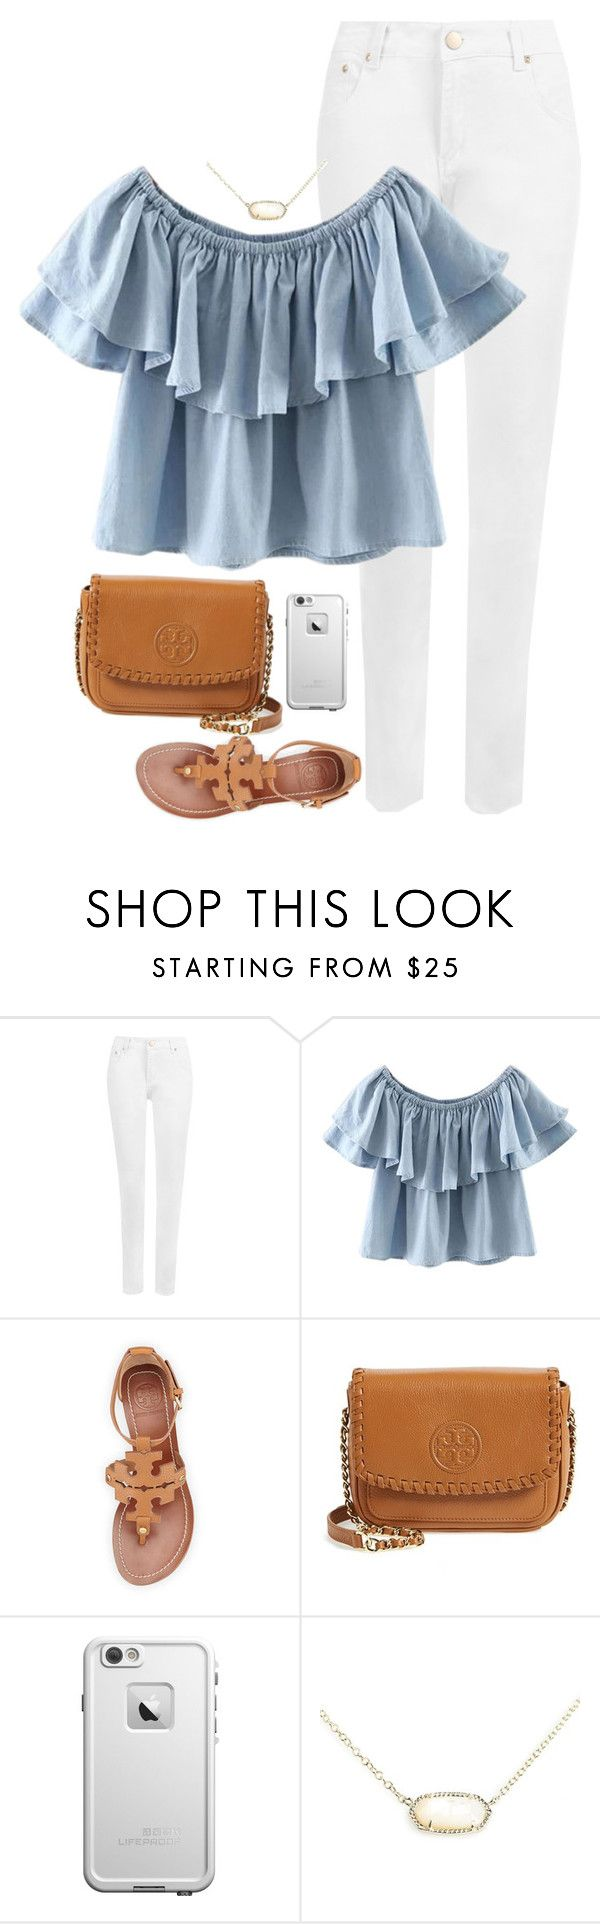 """""""1st day of school today"""" by apemb ❤ liked on Polyvore featuring WearAll, WithChic, Tory Burch, LifeProof and Kendra Scott"""